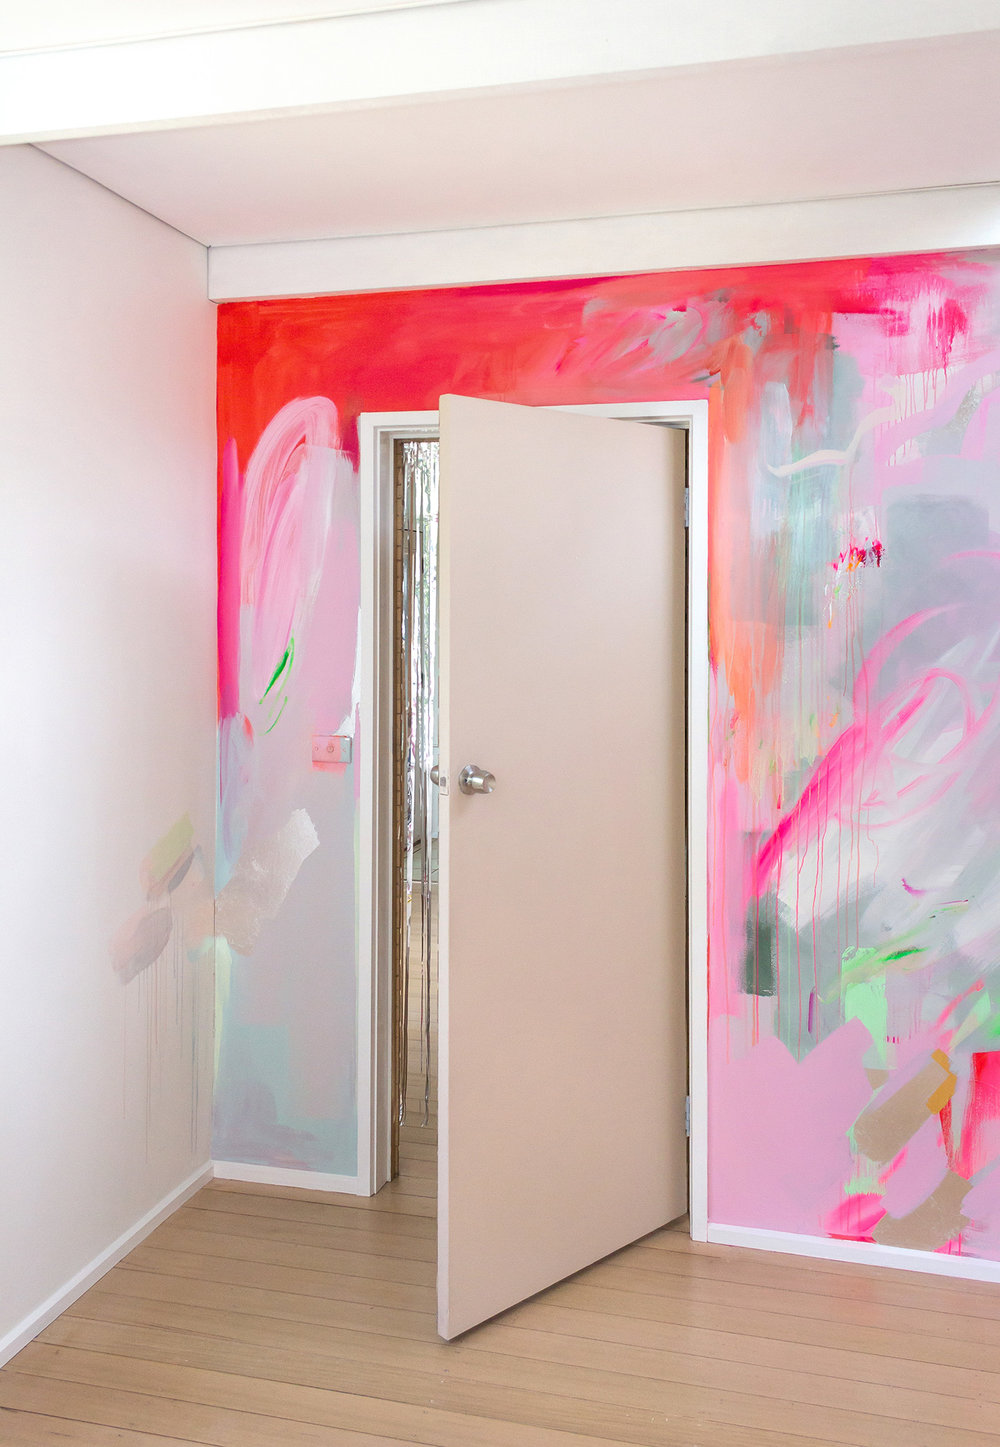 Vibrant abstract mural in pink, red and pastel colours. A silver metallic curtain peeks out from the doorway.